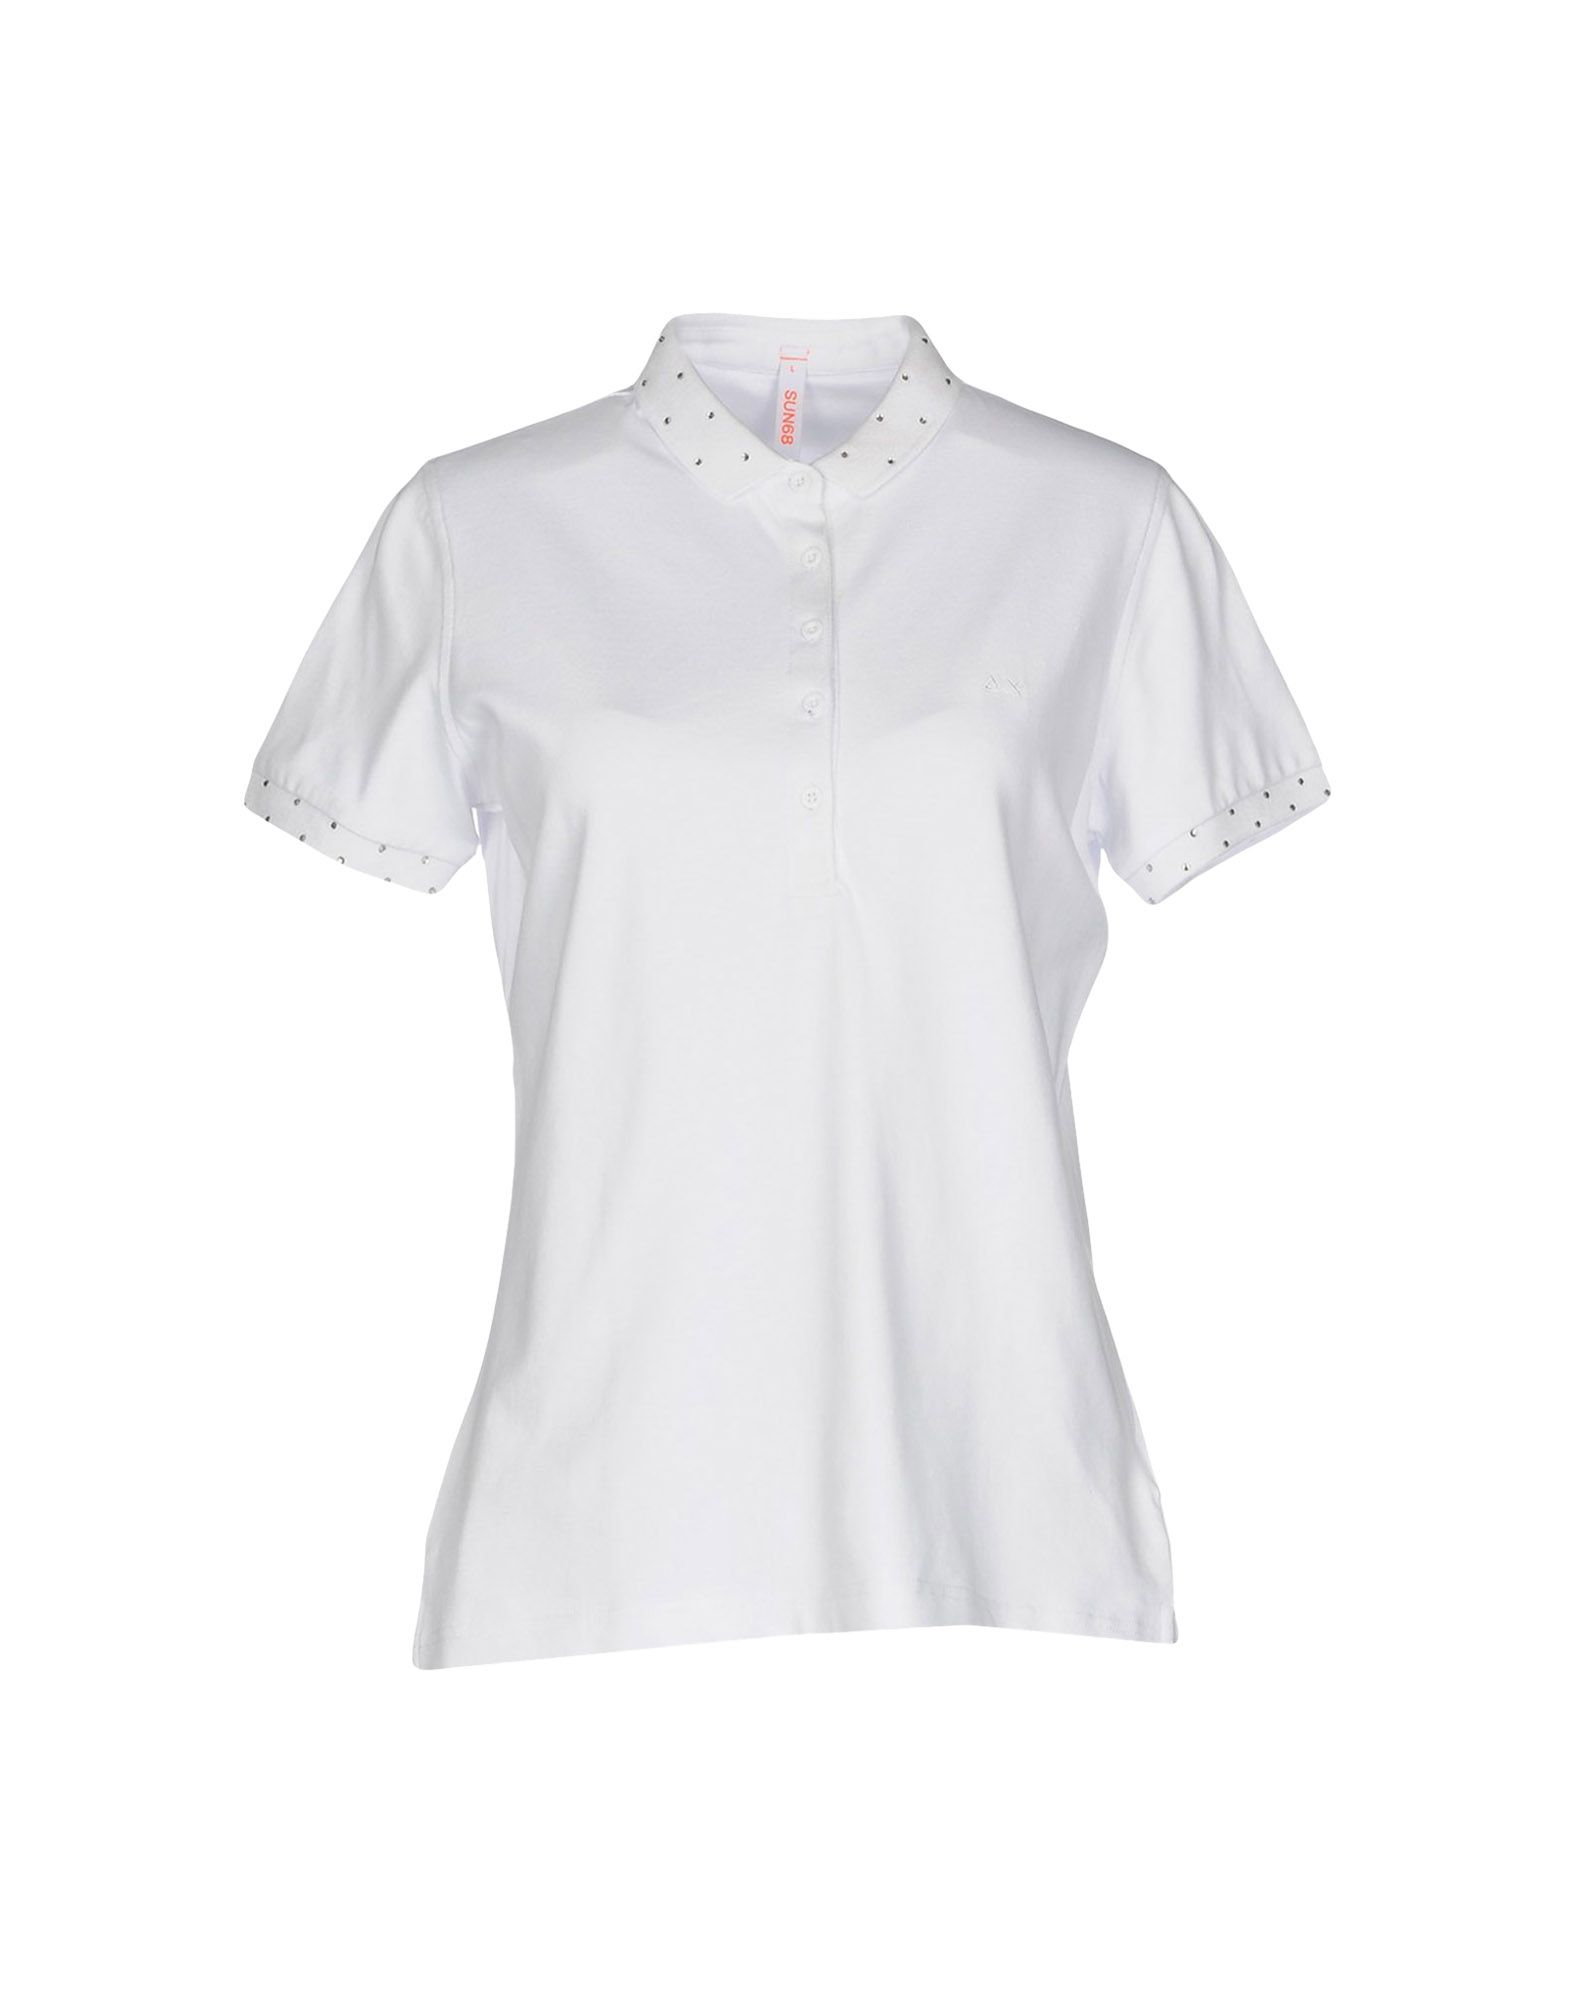 Sale Excellent New Arrival Black polo with rhinestones Sun 68 Buy Cheap Perfect Cheapest Price Sale Online MFe0dGWx